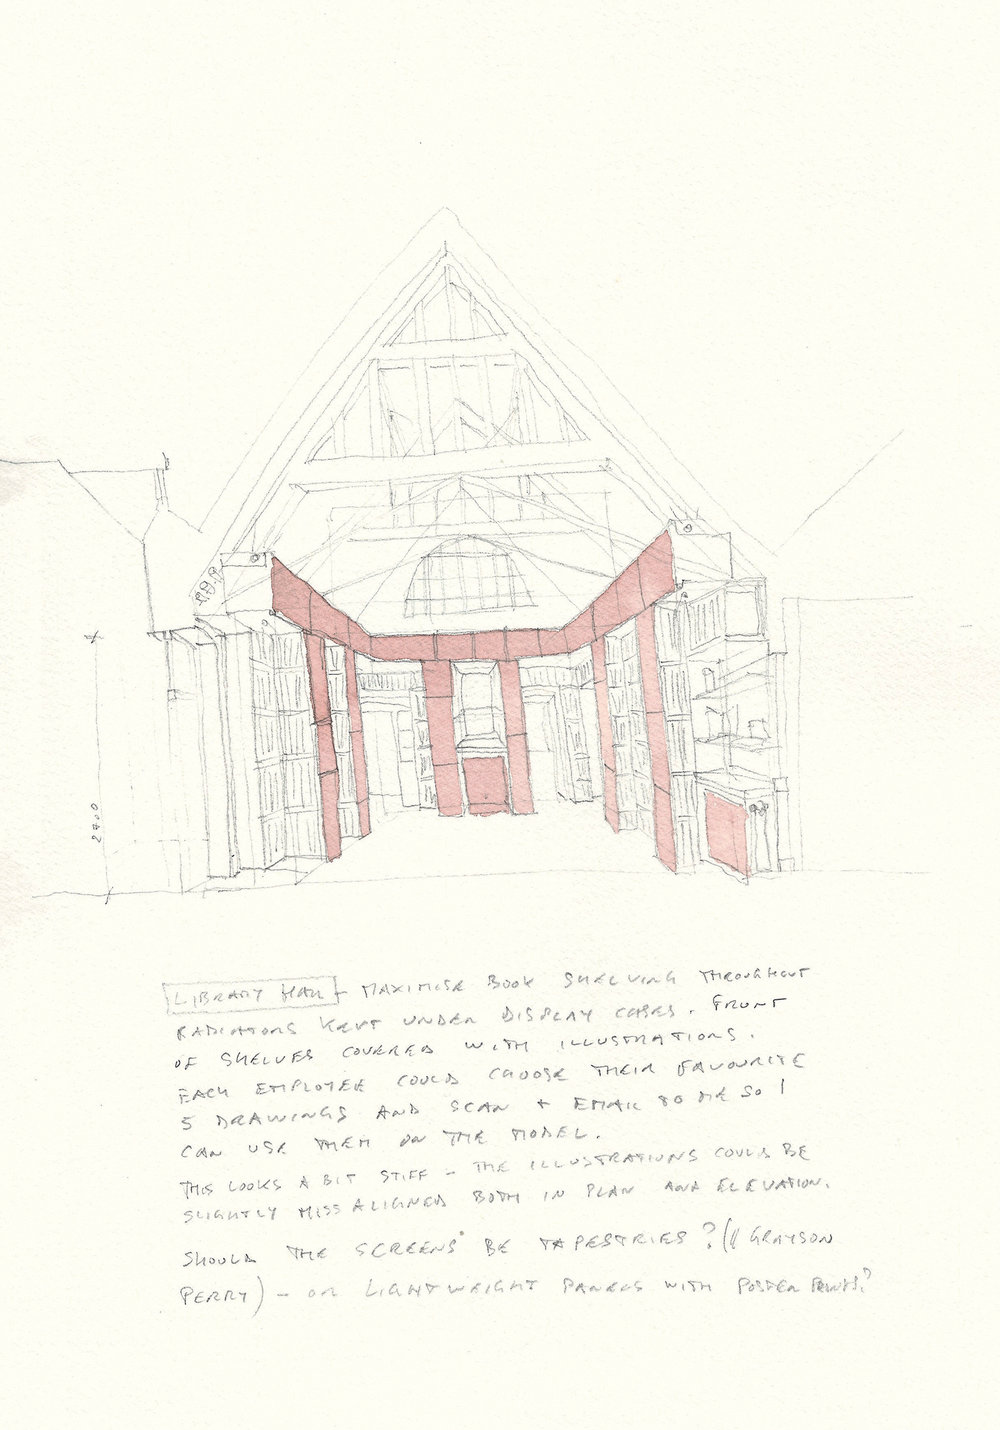 Original concept sketch for the library